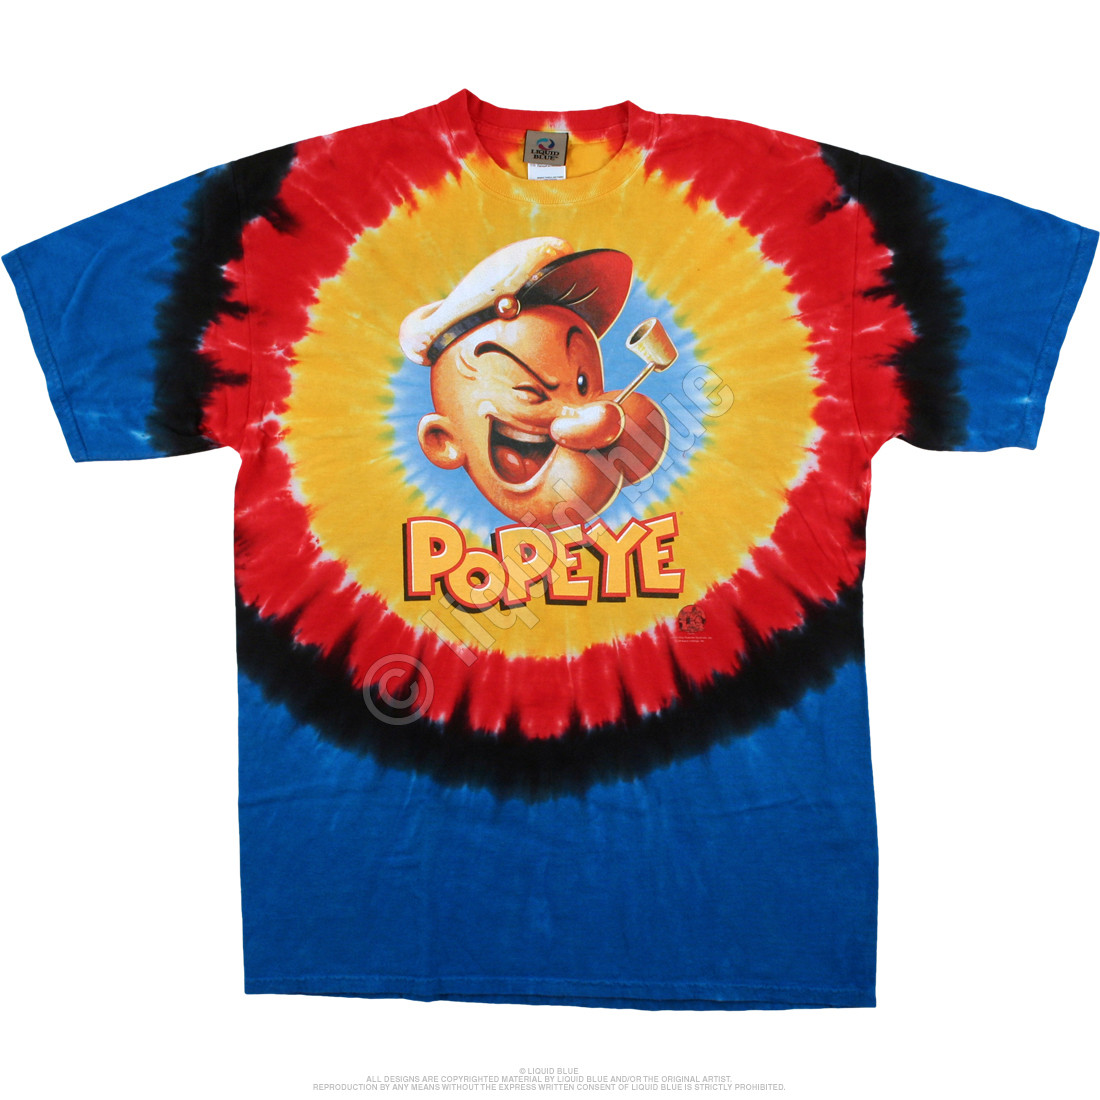 Popeye Concentric Tie-Dye T-Shirt